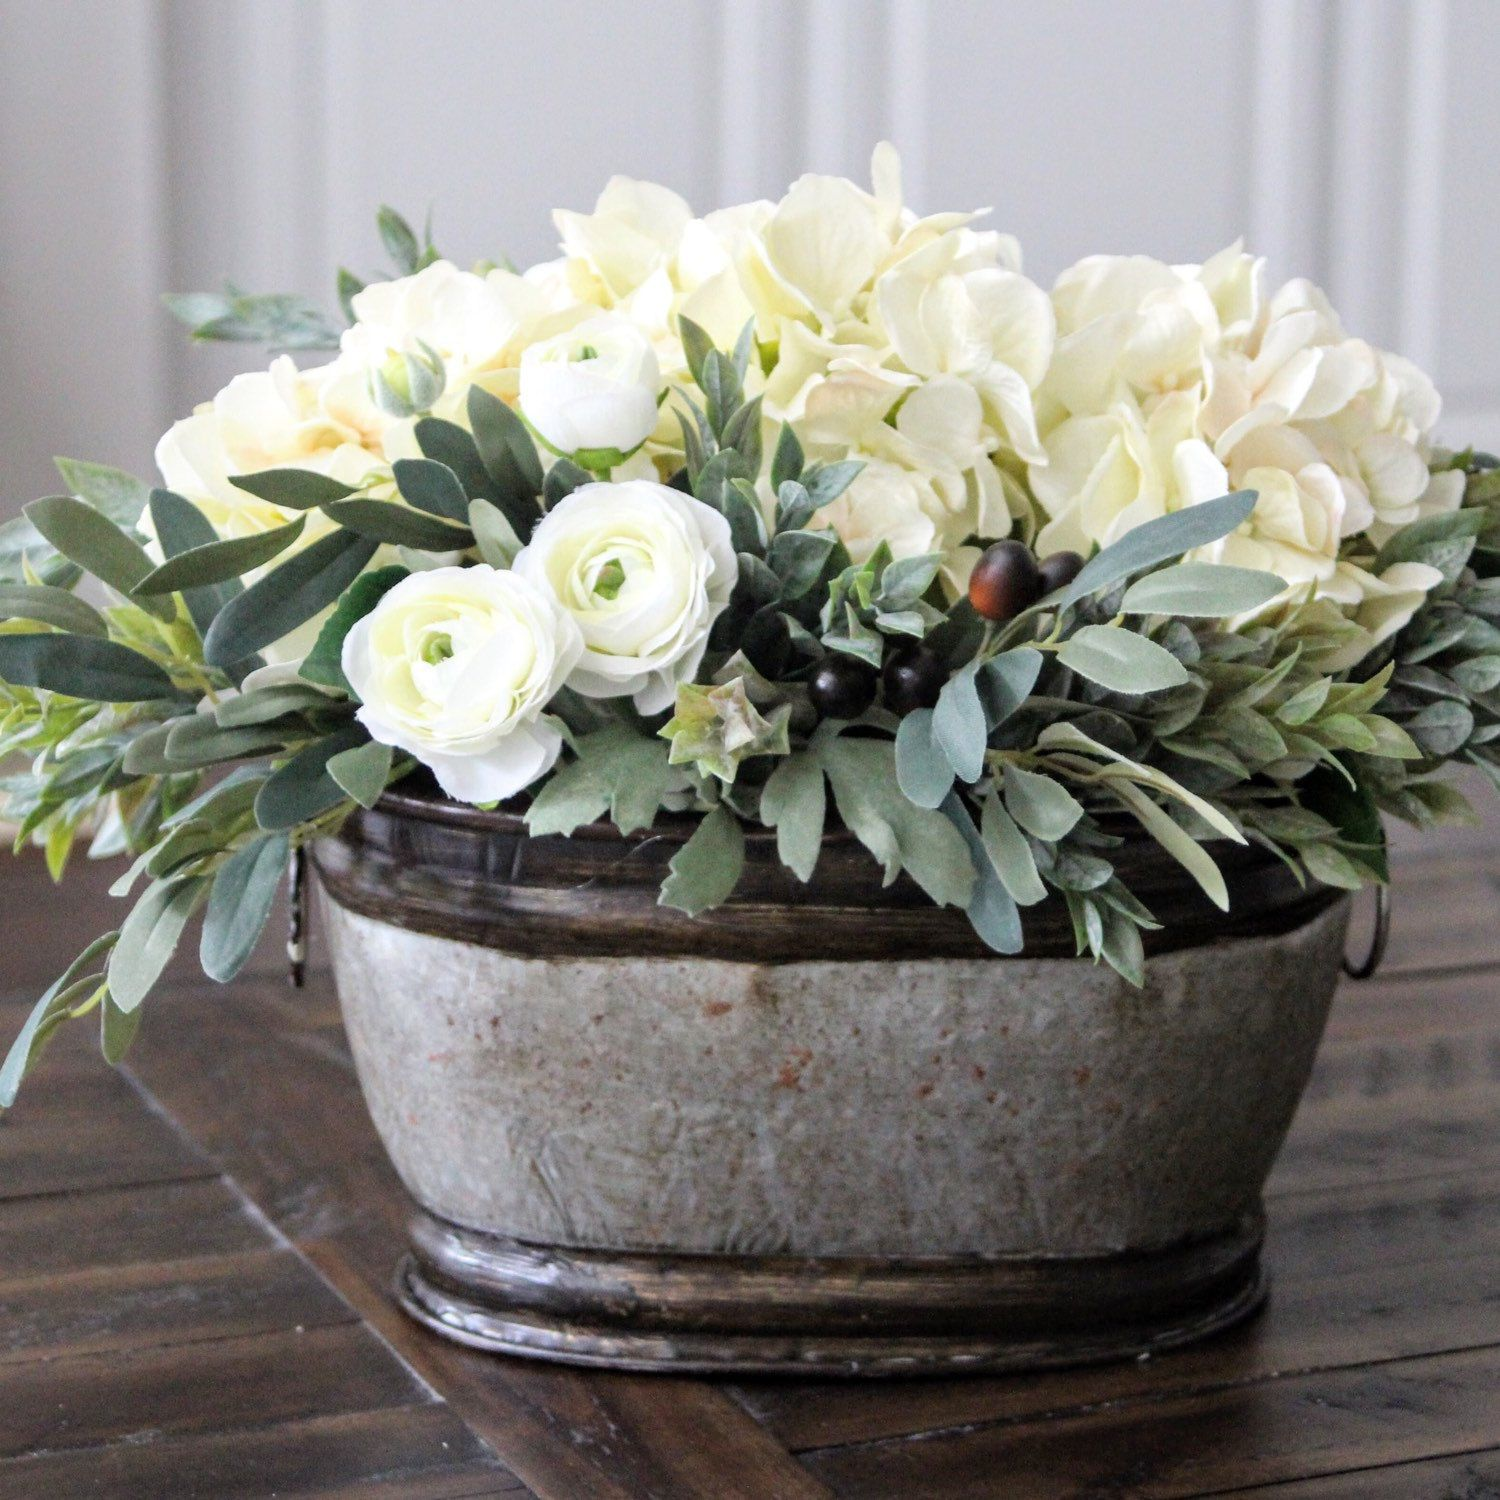 Hydrangeas Mini Ranunculus And Olive Stems Farmhouse Decor In